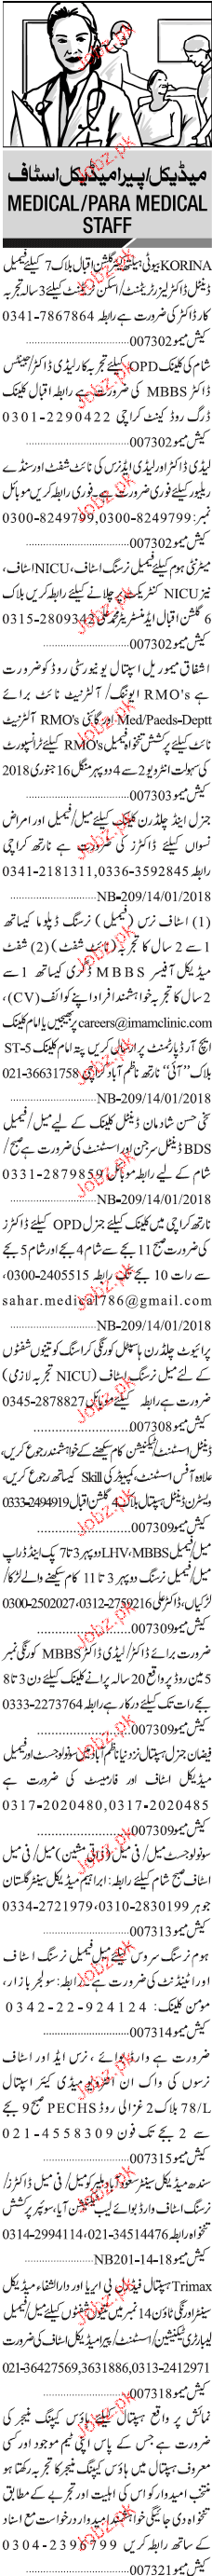 Dental Doctors, MBBS Doctors Job Opportunity